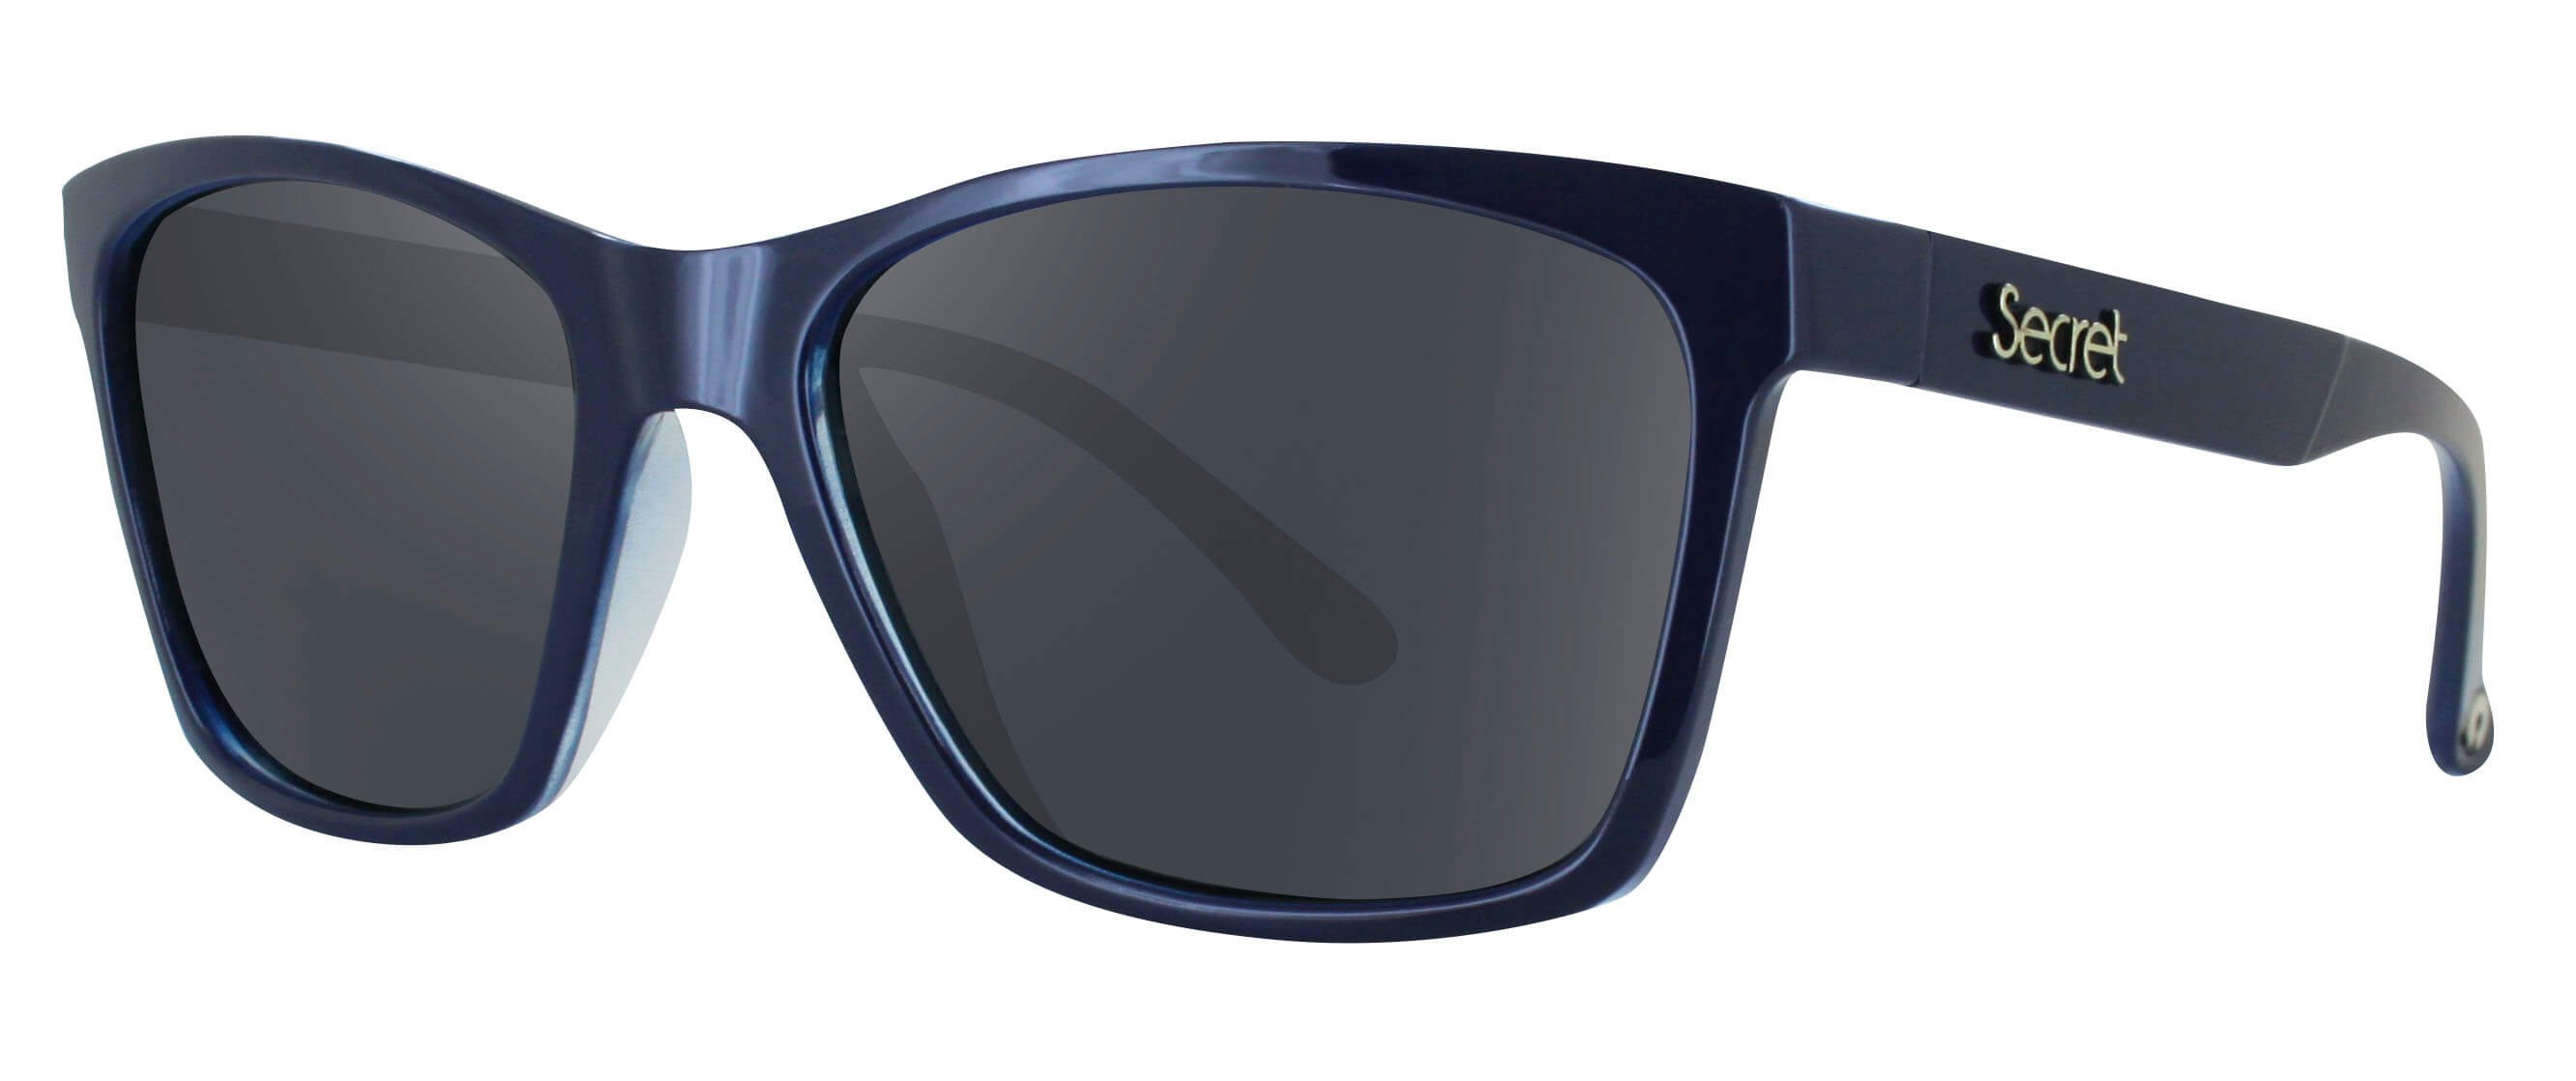 ÓC SECRET SOPHIA NEW BLUE / POLARIZED GRAY